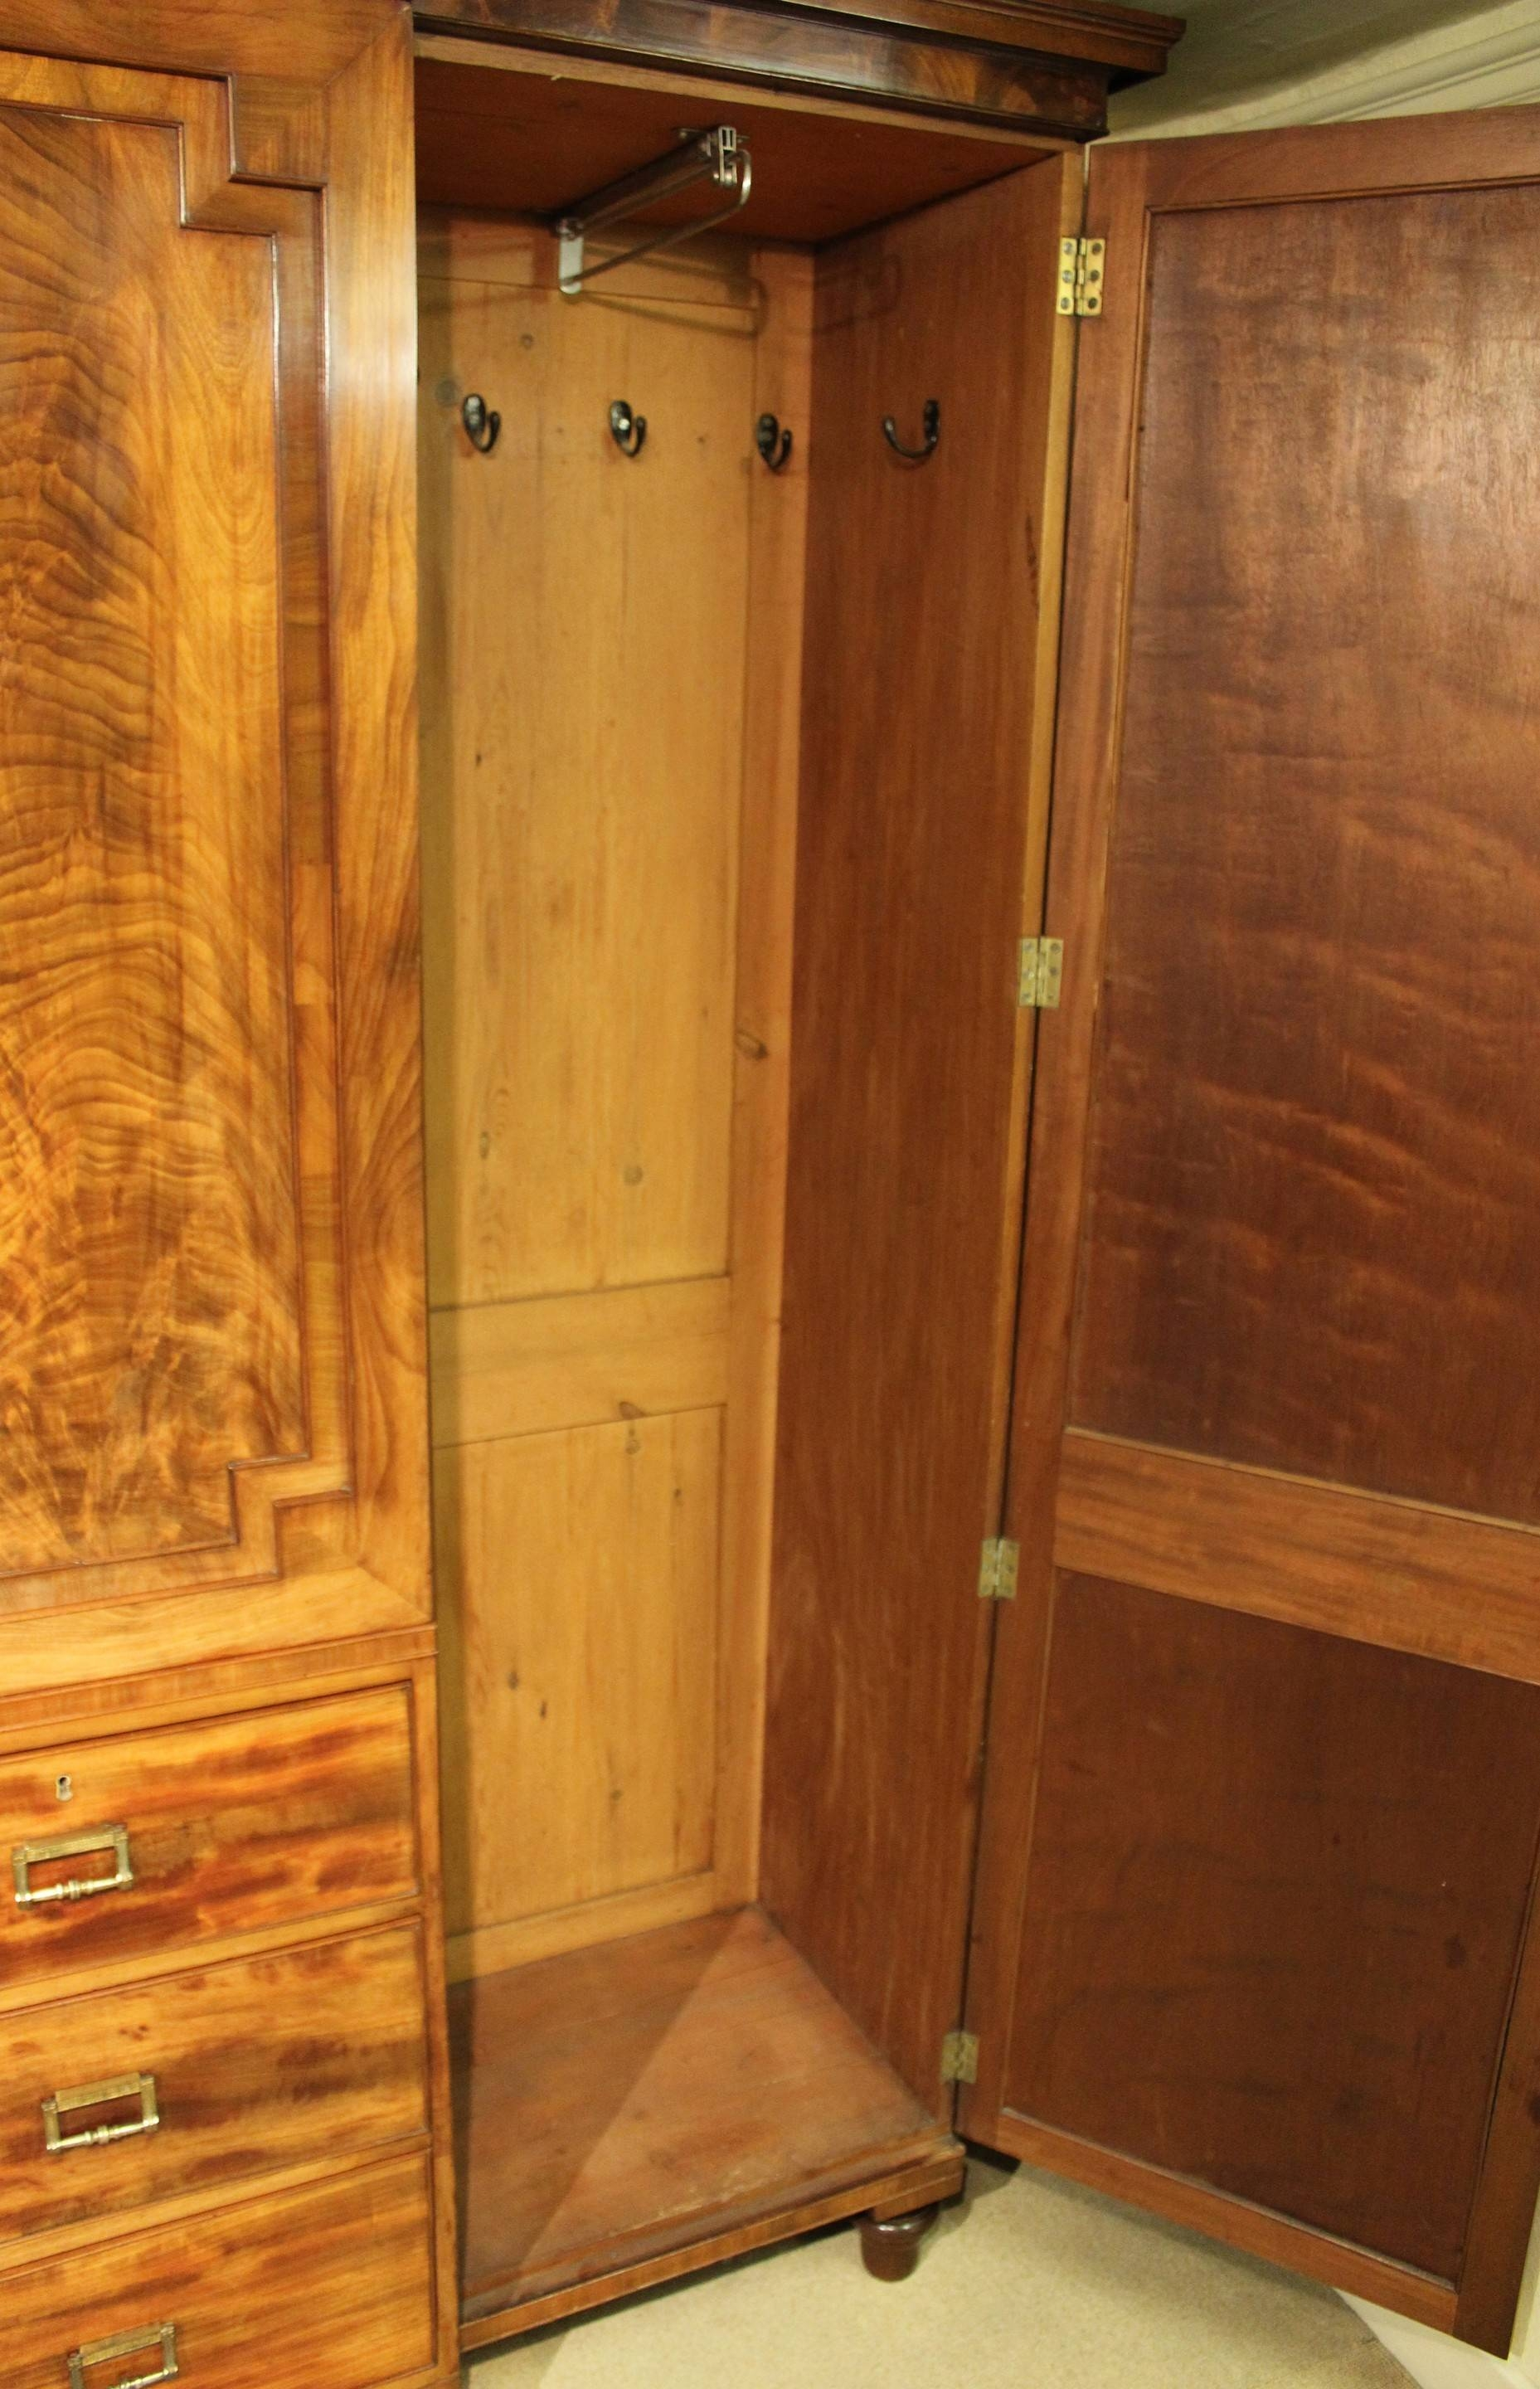 George Iv Period Mahogany Breakfront Wardrobe Of Exceptionally throughout Mahogany Breakfront Wardrobe (Image 12 of 30)